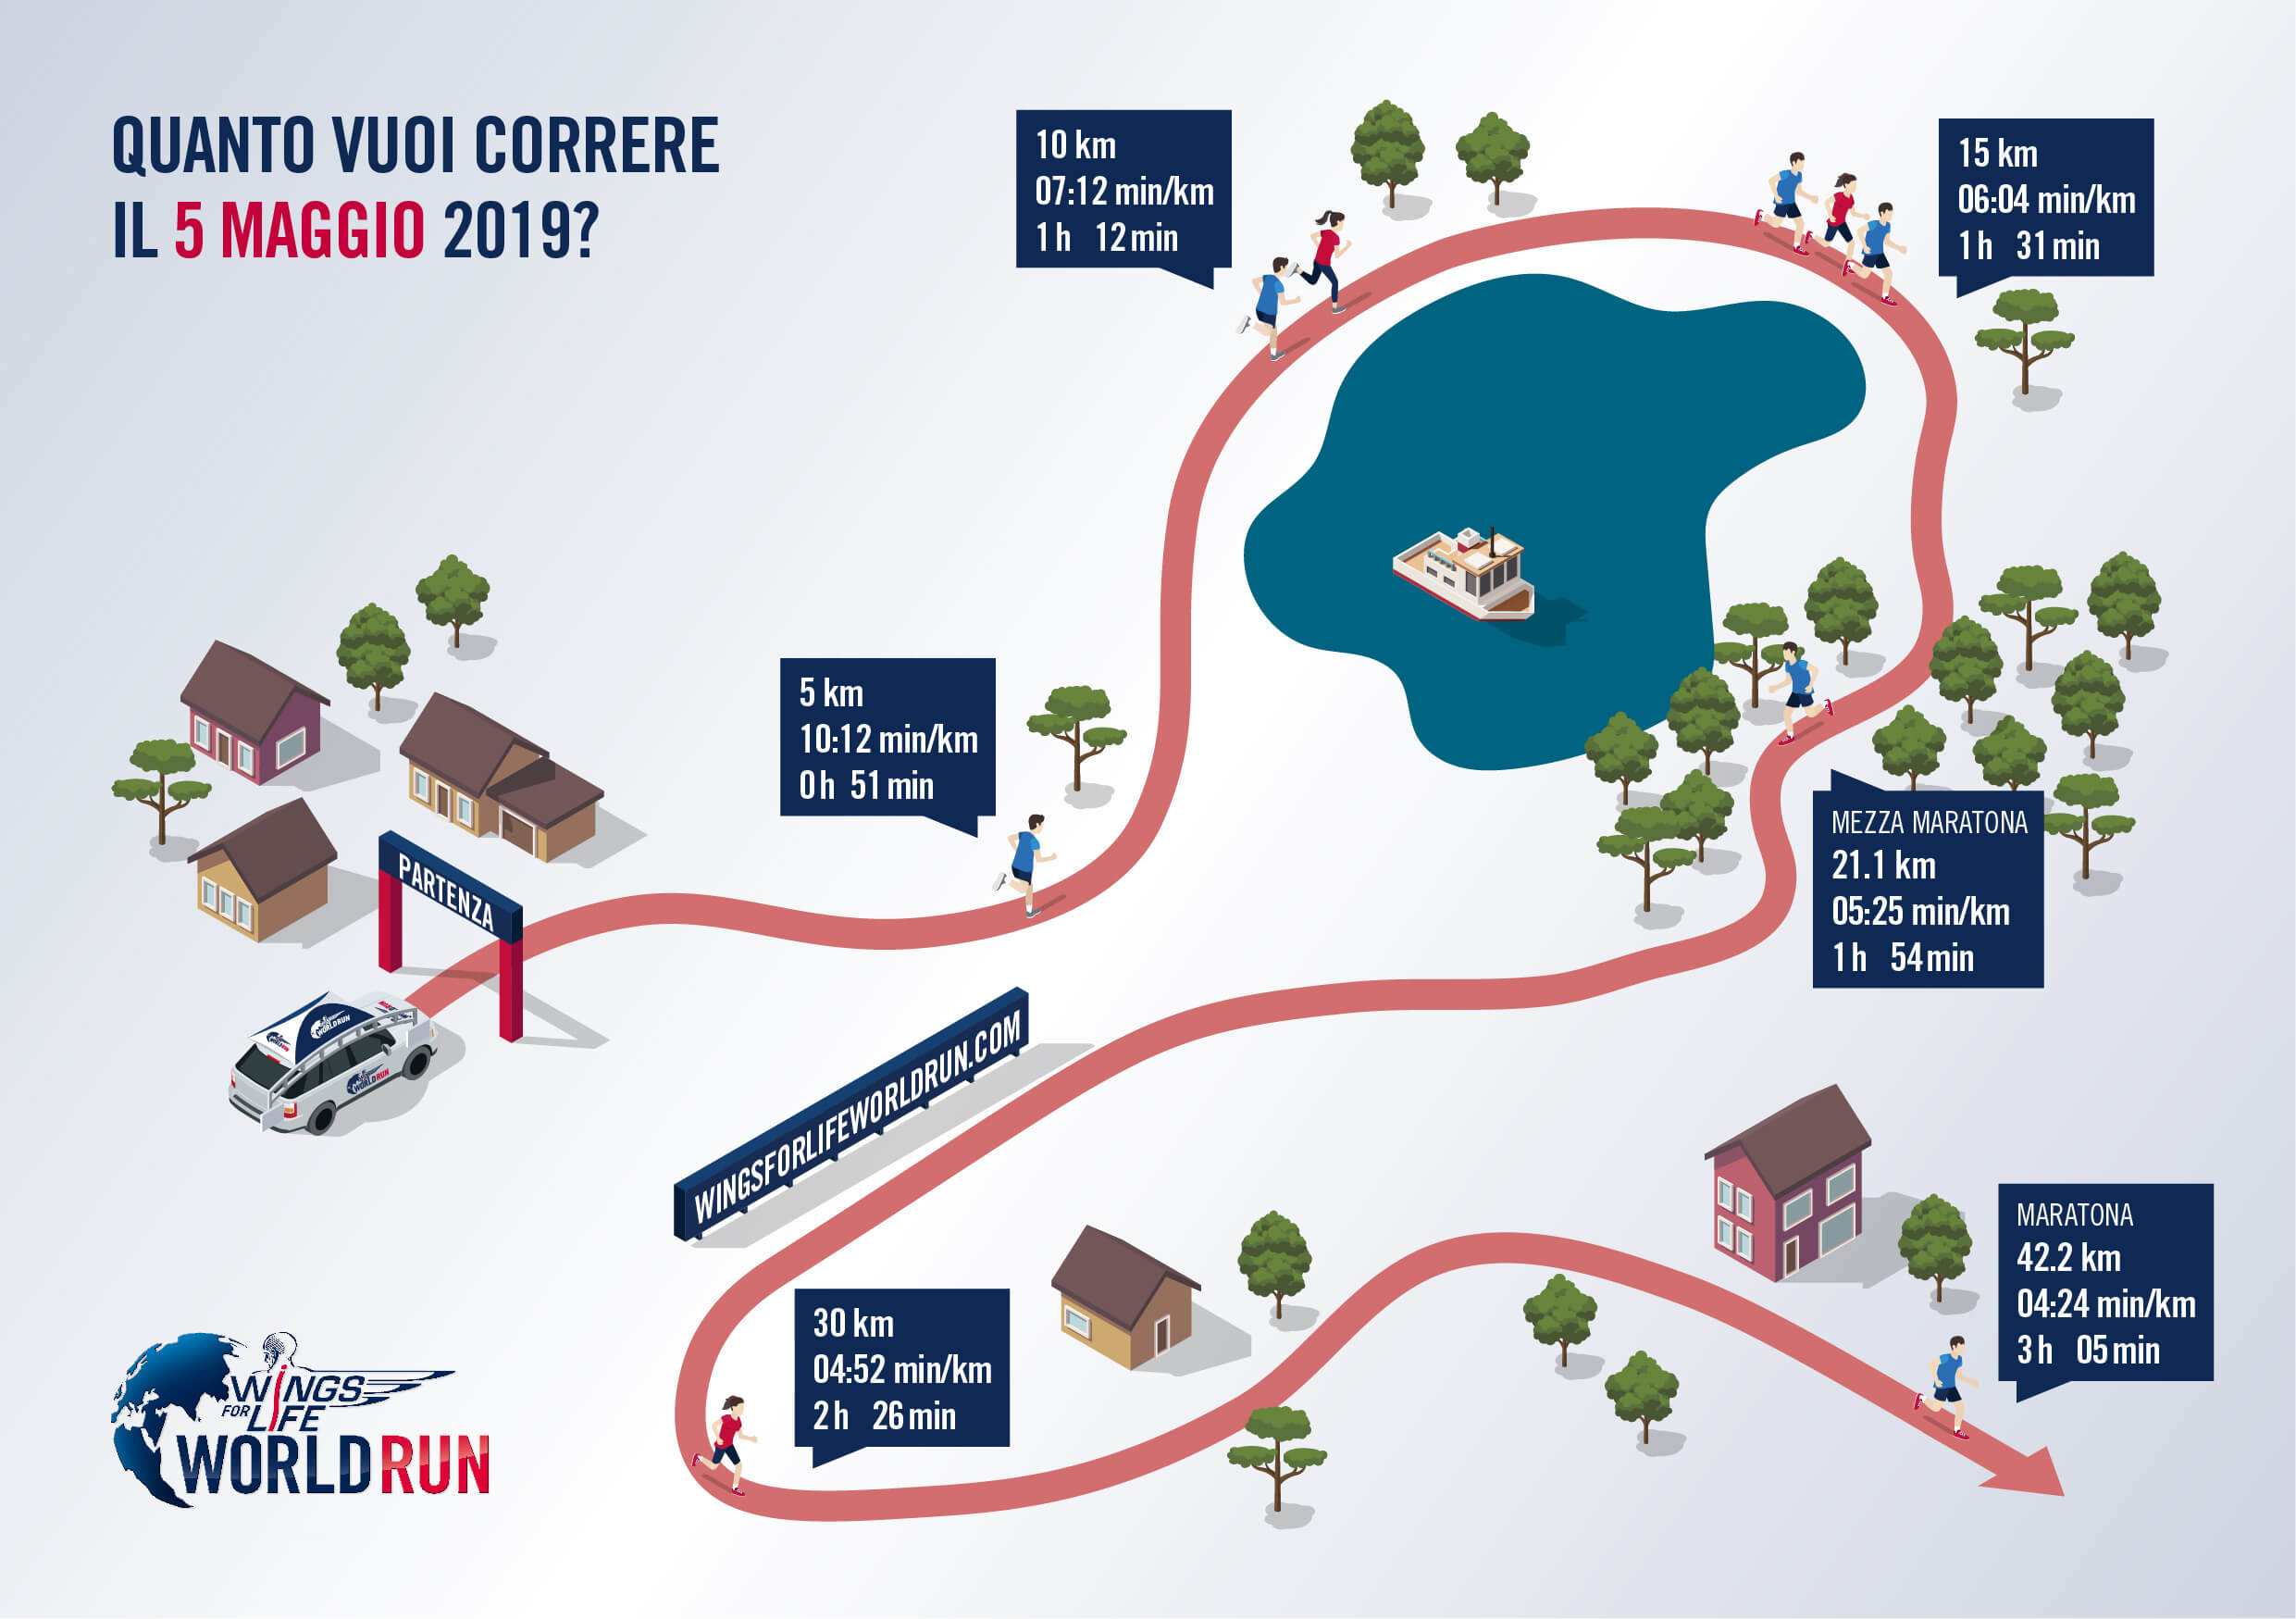 Wing for Life World Run